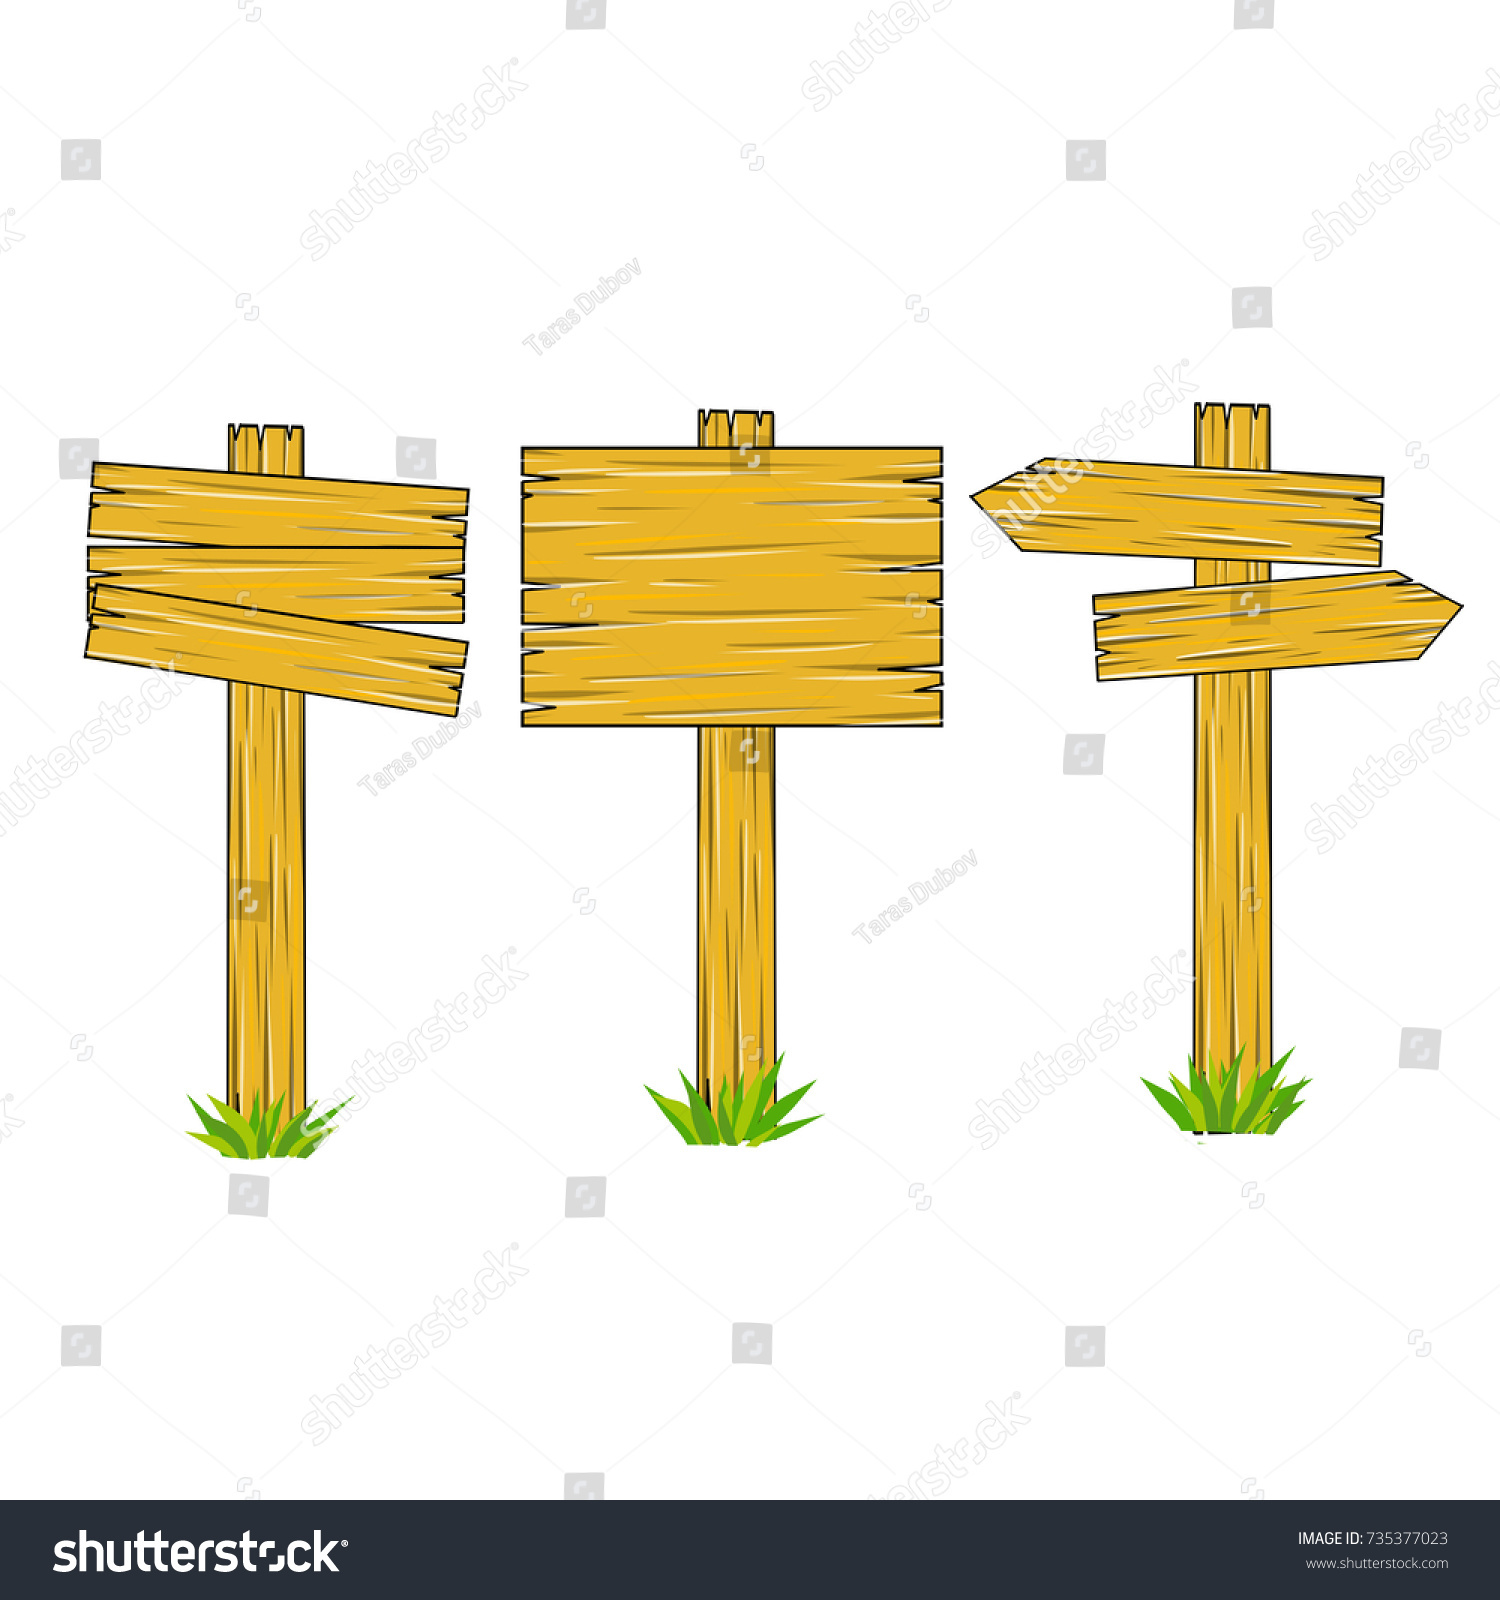 Cartoon wooden sign direction way index stock vector 735377023 cartoon wooden sign direction way index biocorpaavc Gallery